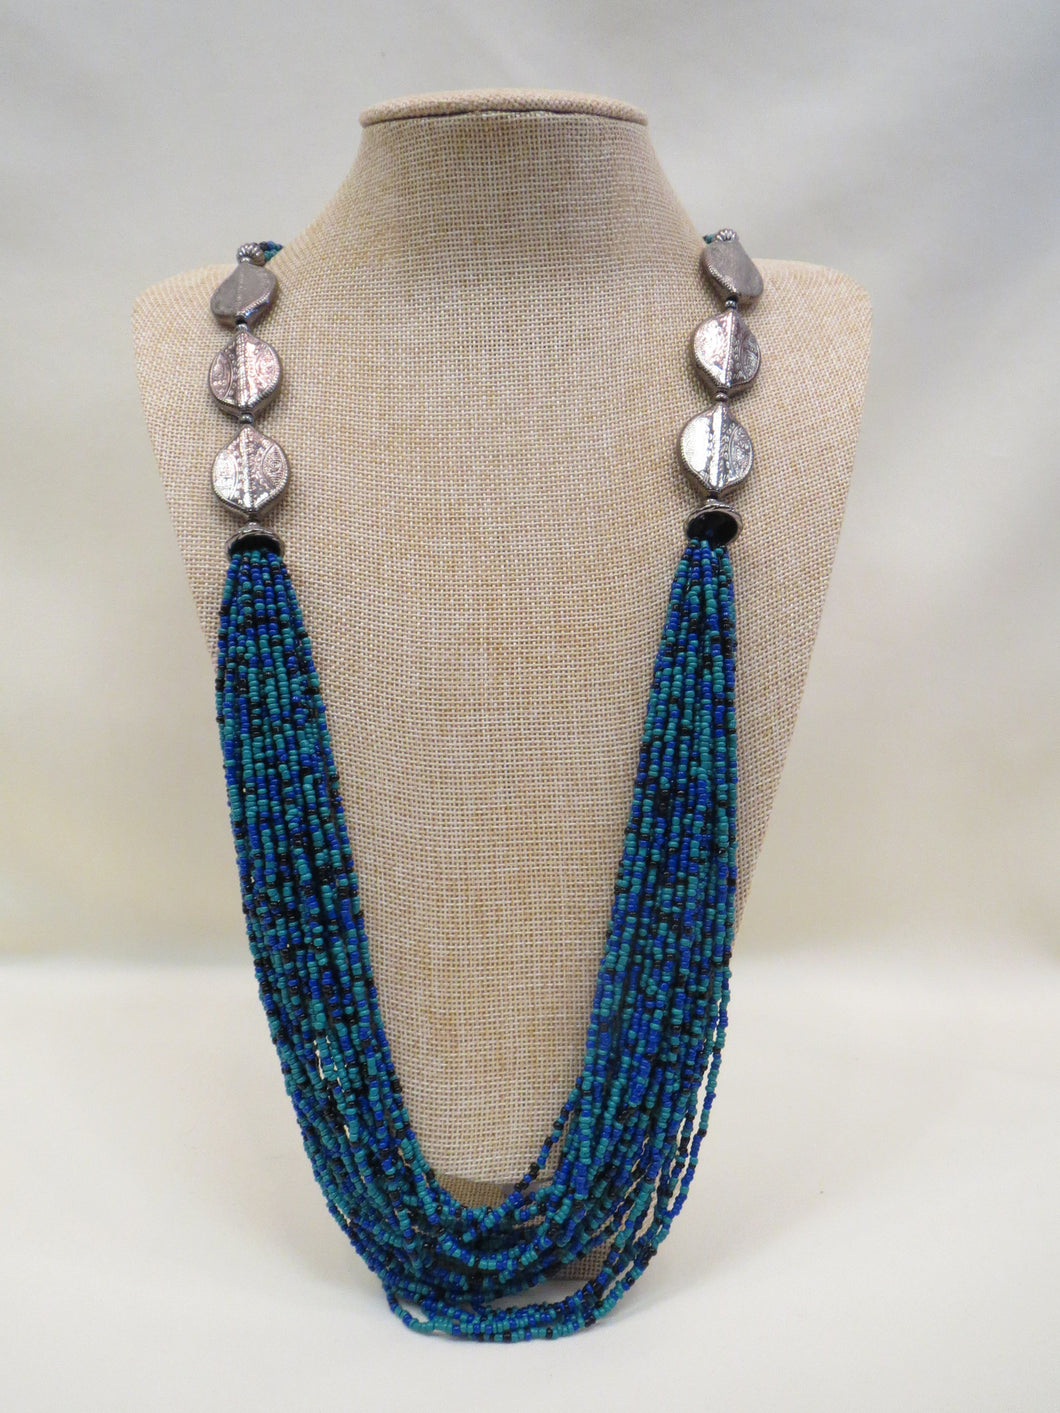 ADO Long Beaded Necklace with Silver Medallions | All Dec'd Out